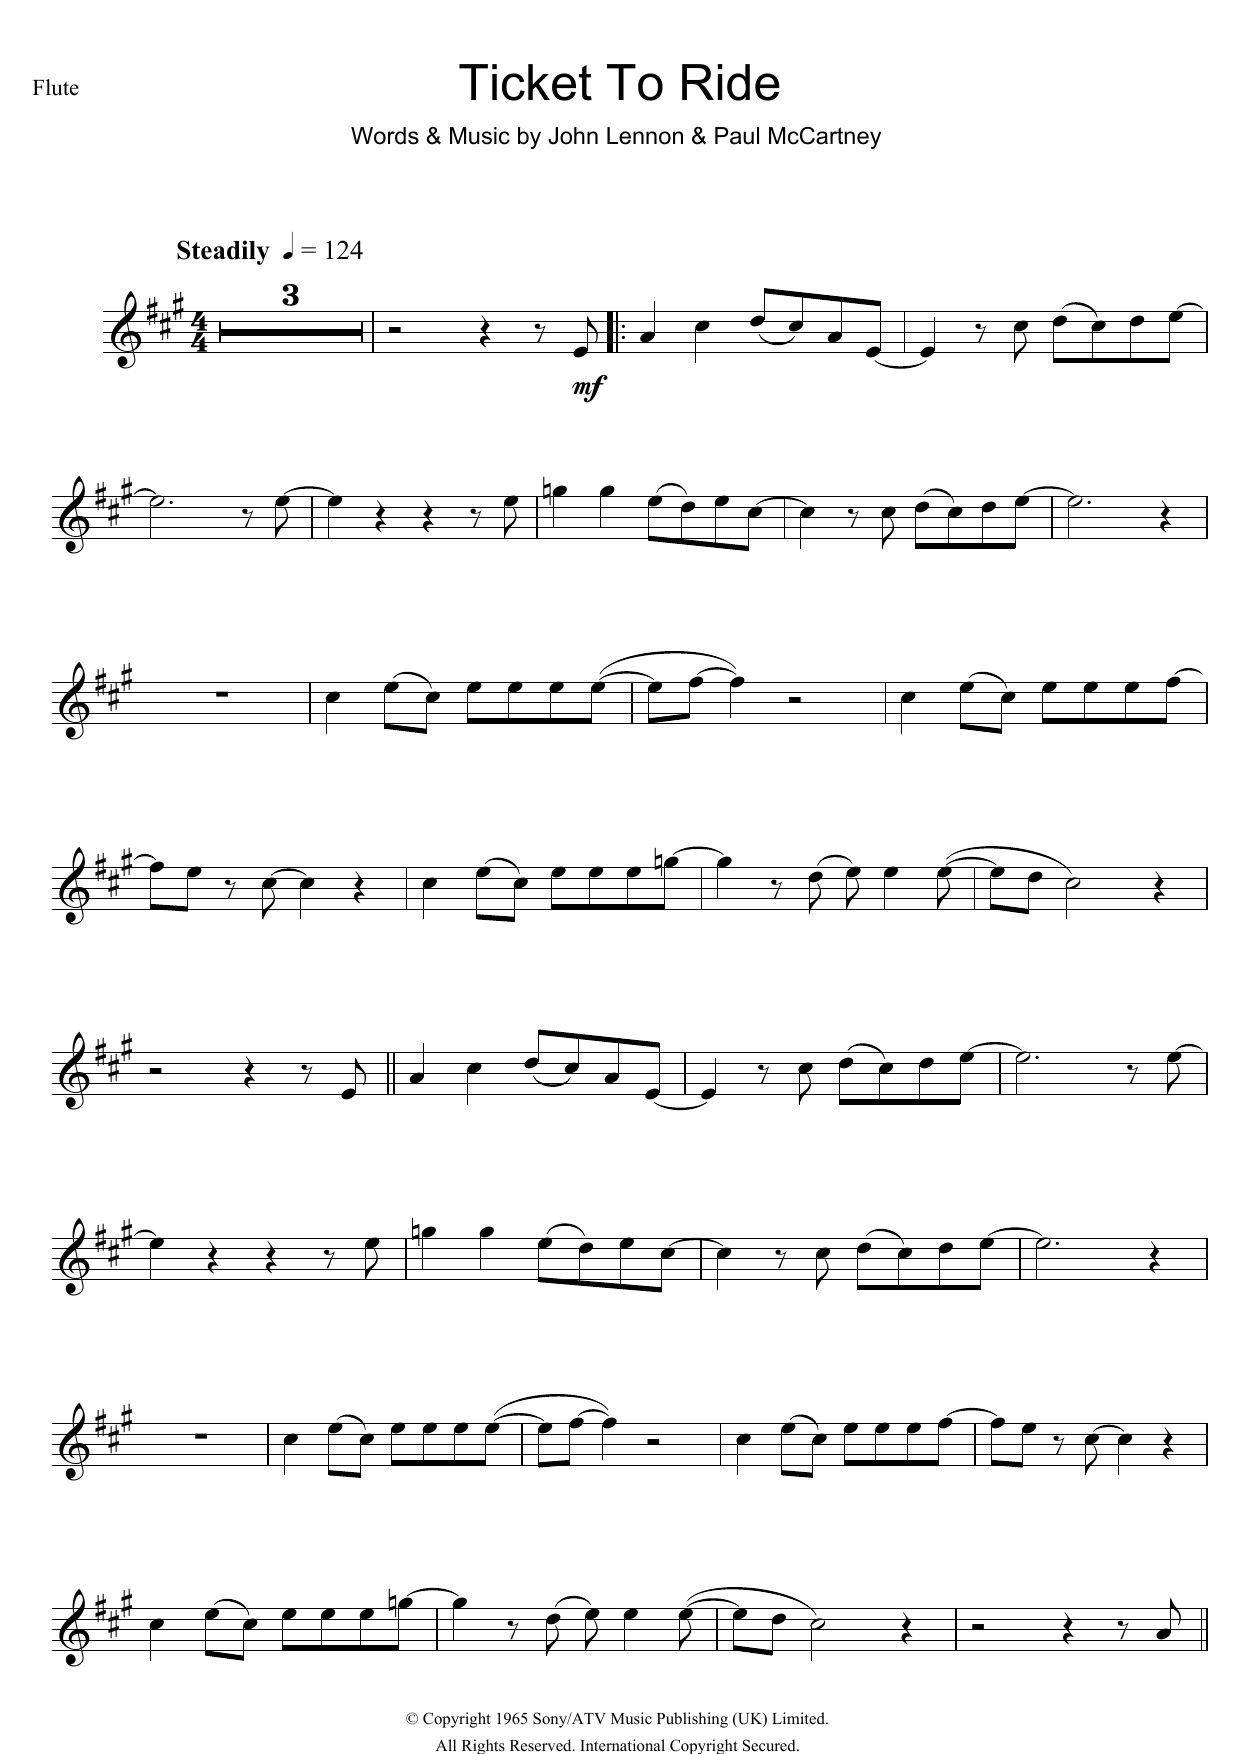 Ticket To Ride (Flute Solo)